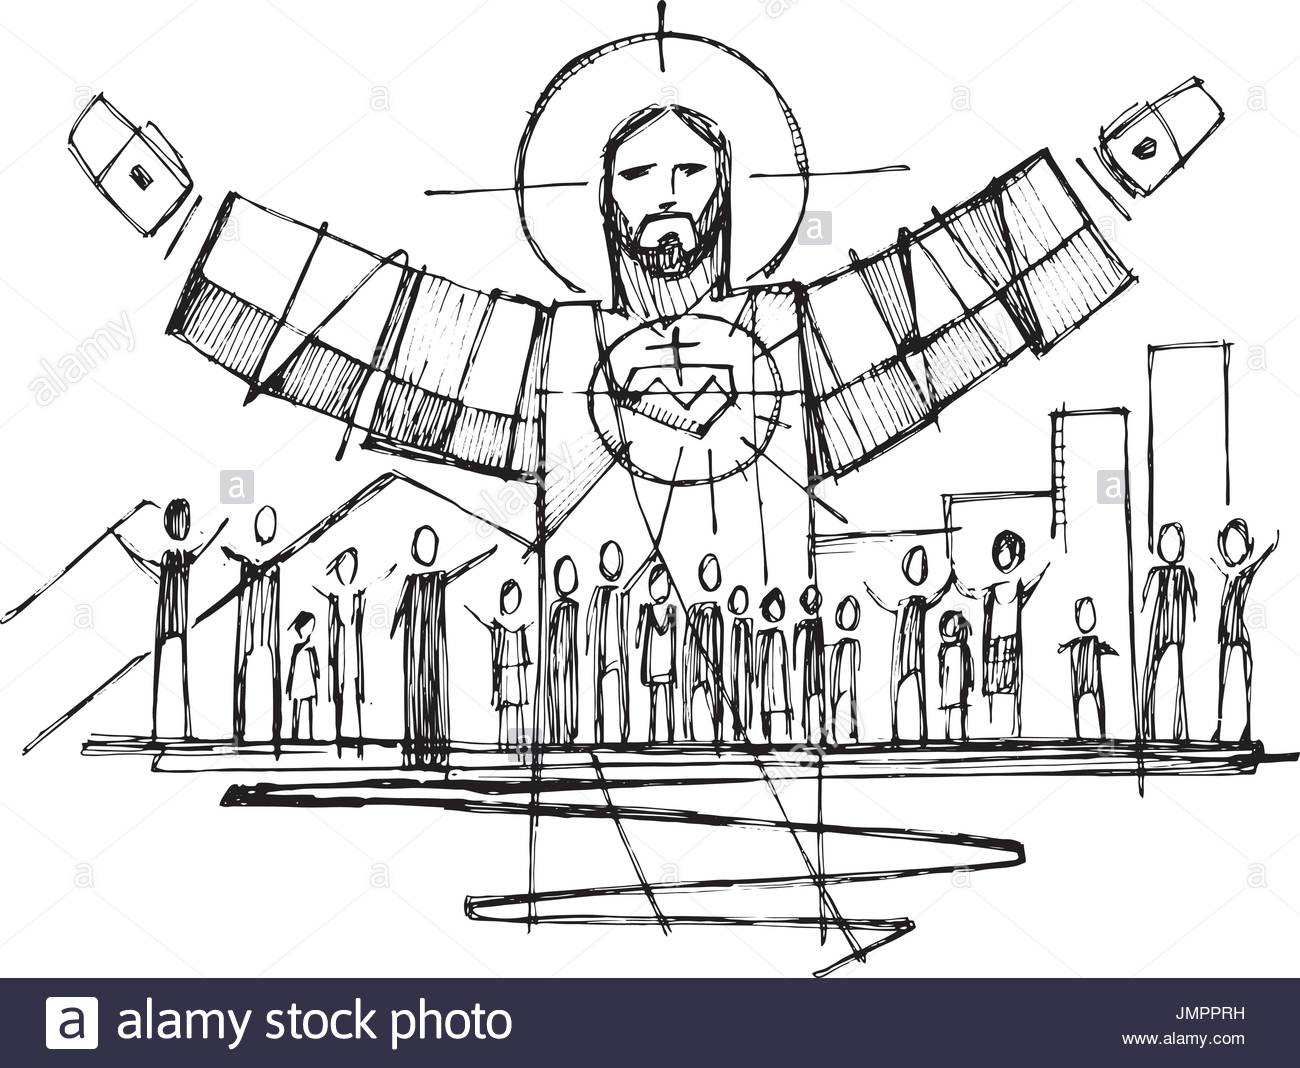 1300x1068 Hand Drawn Vector Illustration Or Drawing Of Jesus Christ